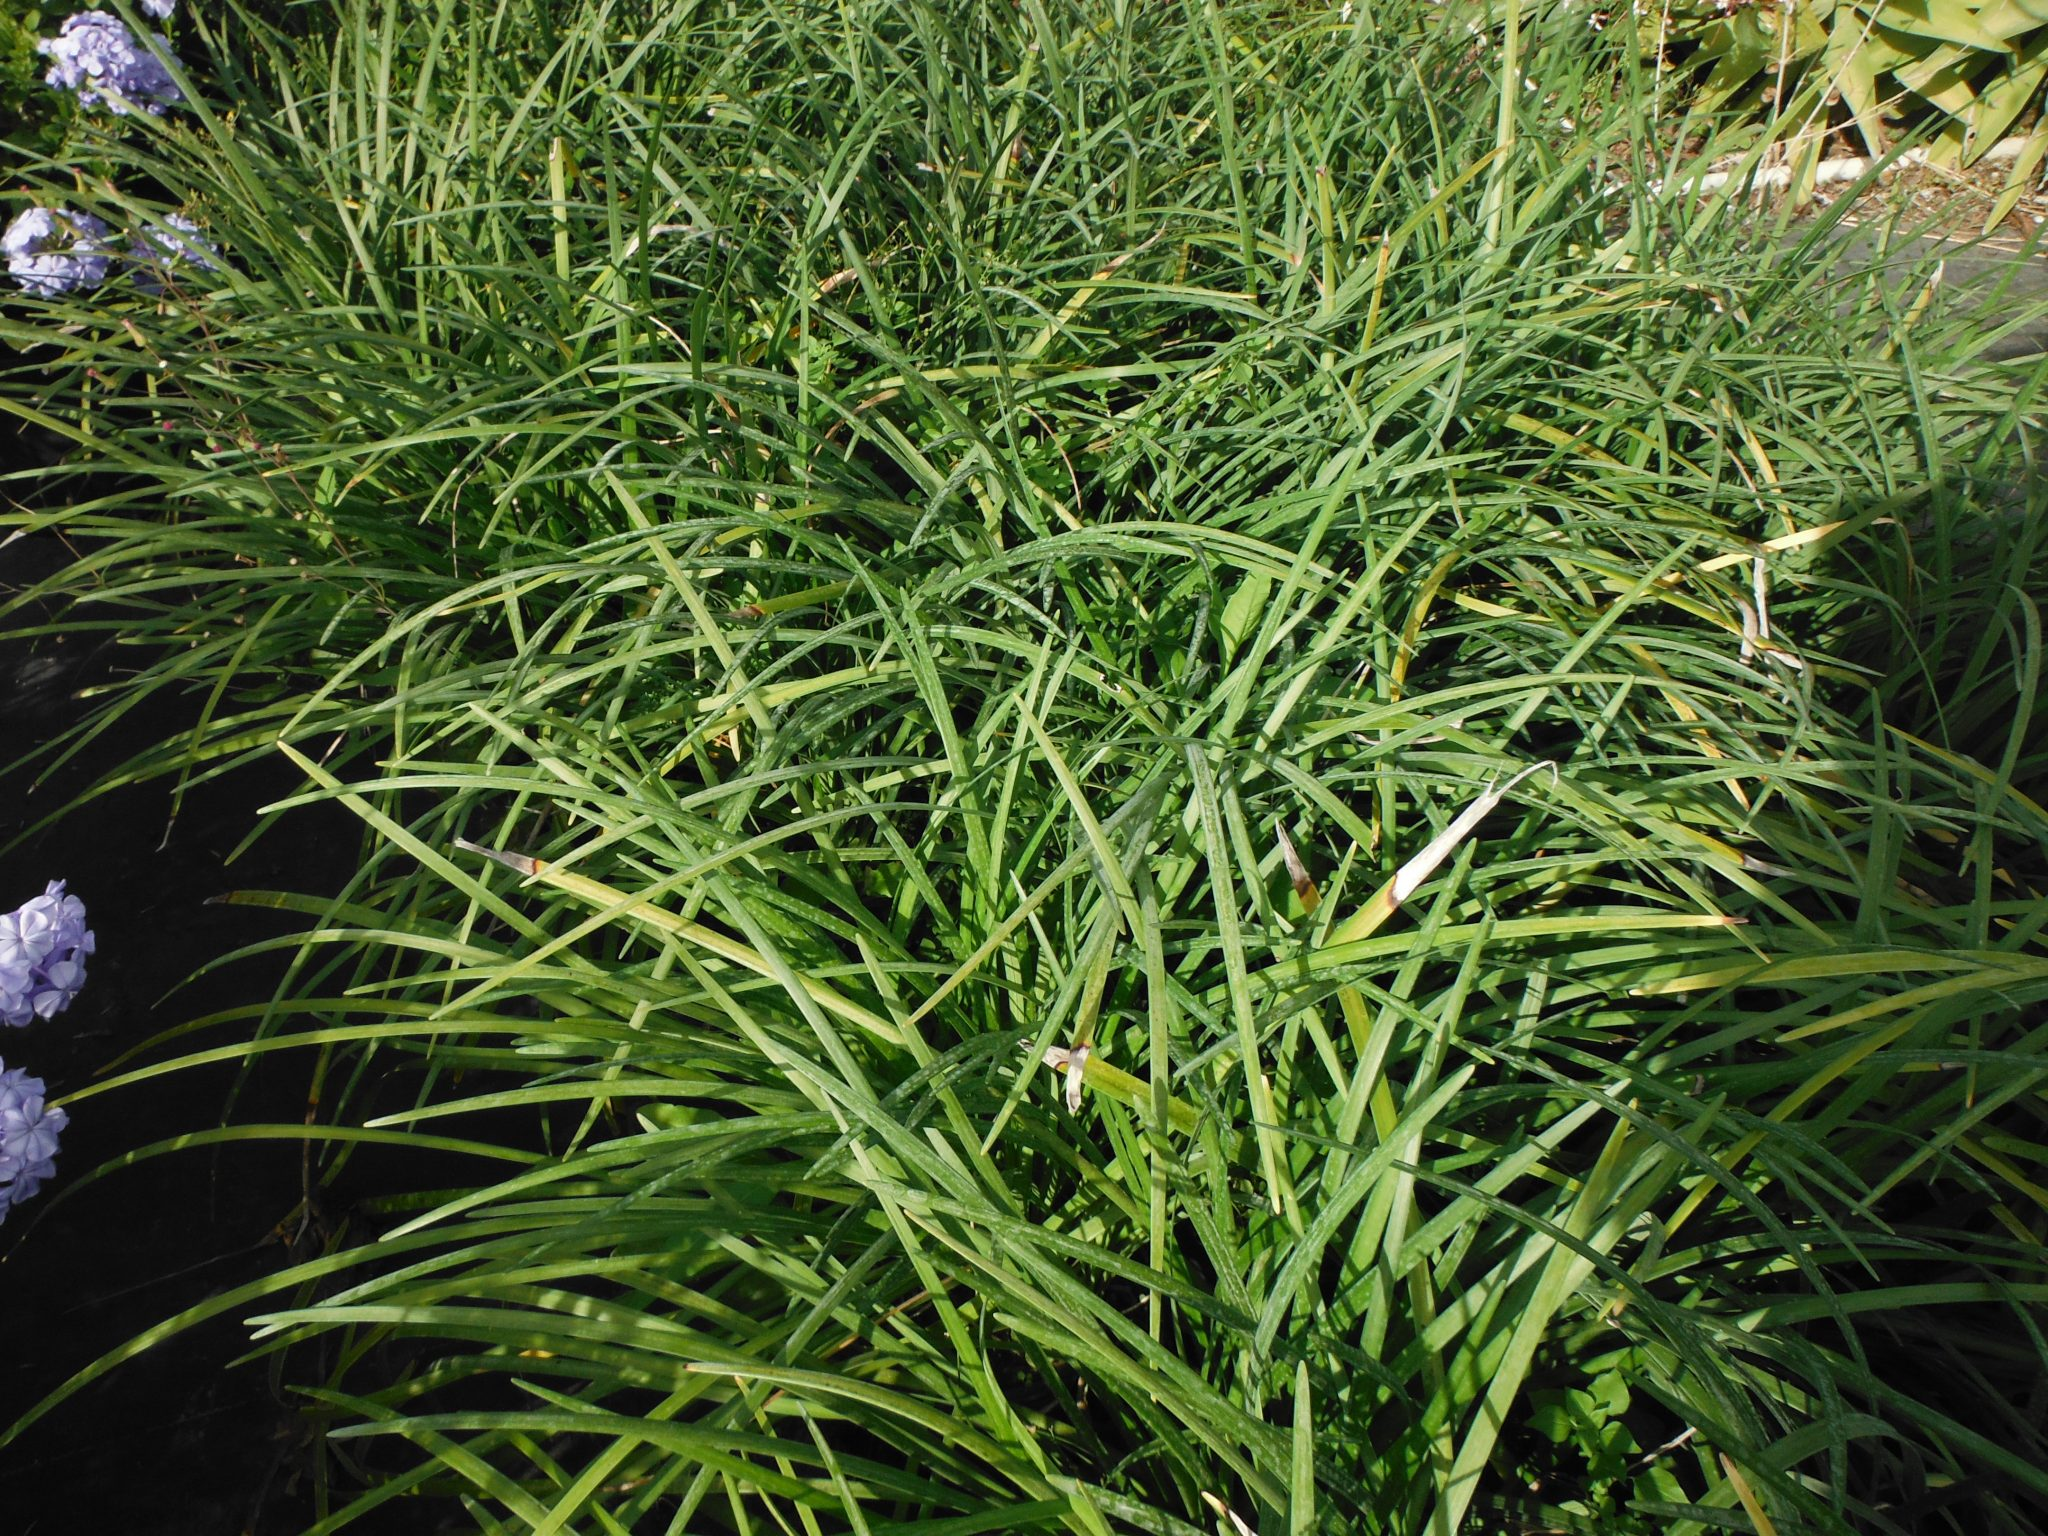 Giant Liriope Or Giant Lilyturf Liriope Gigantea And Mondo Grass